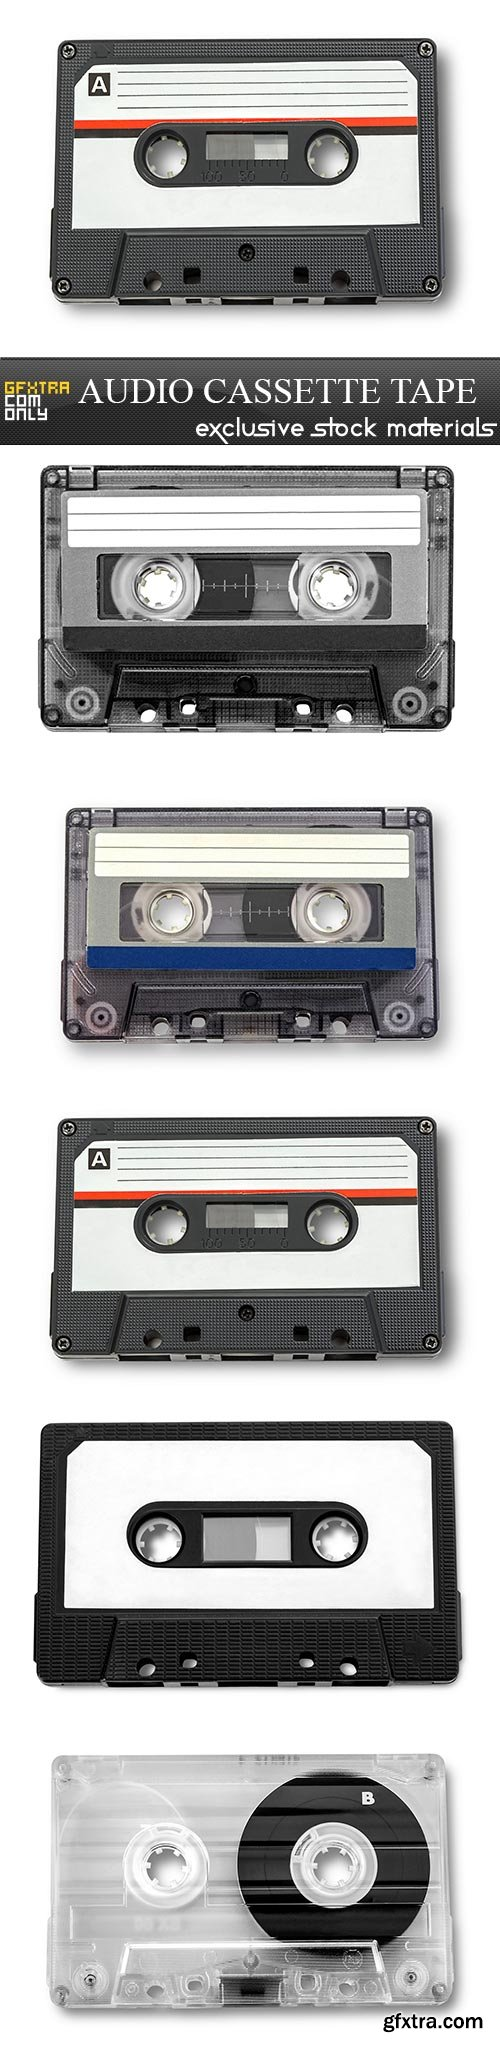 Audio cassette tape, 5 x UHQ JPEG